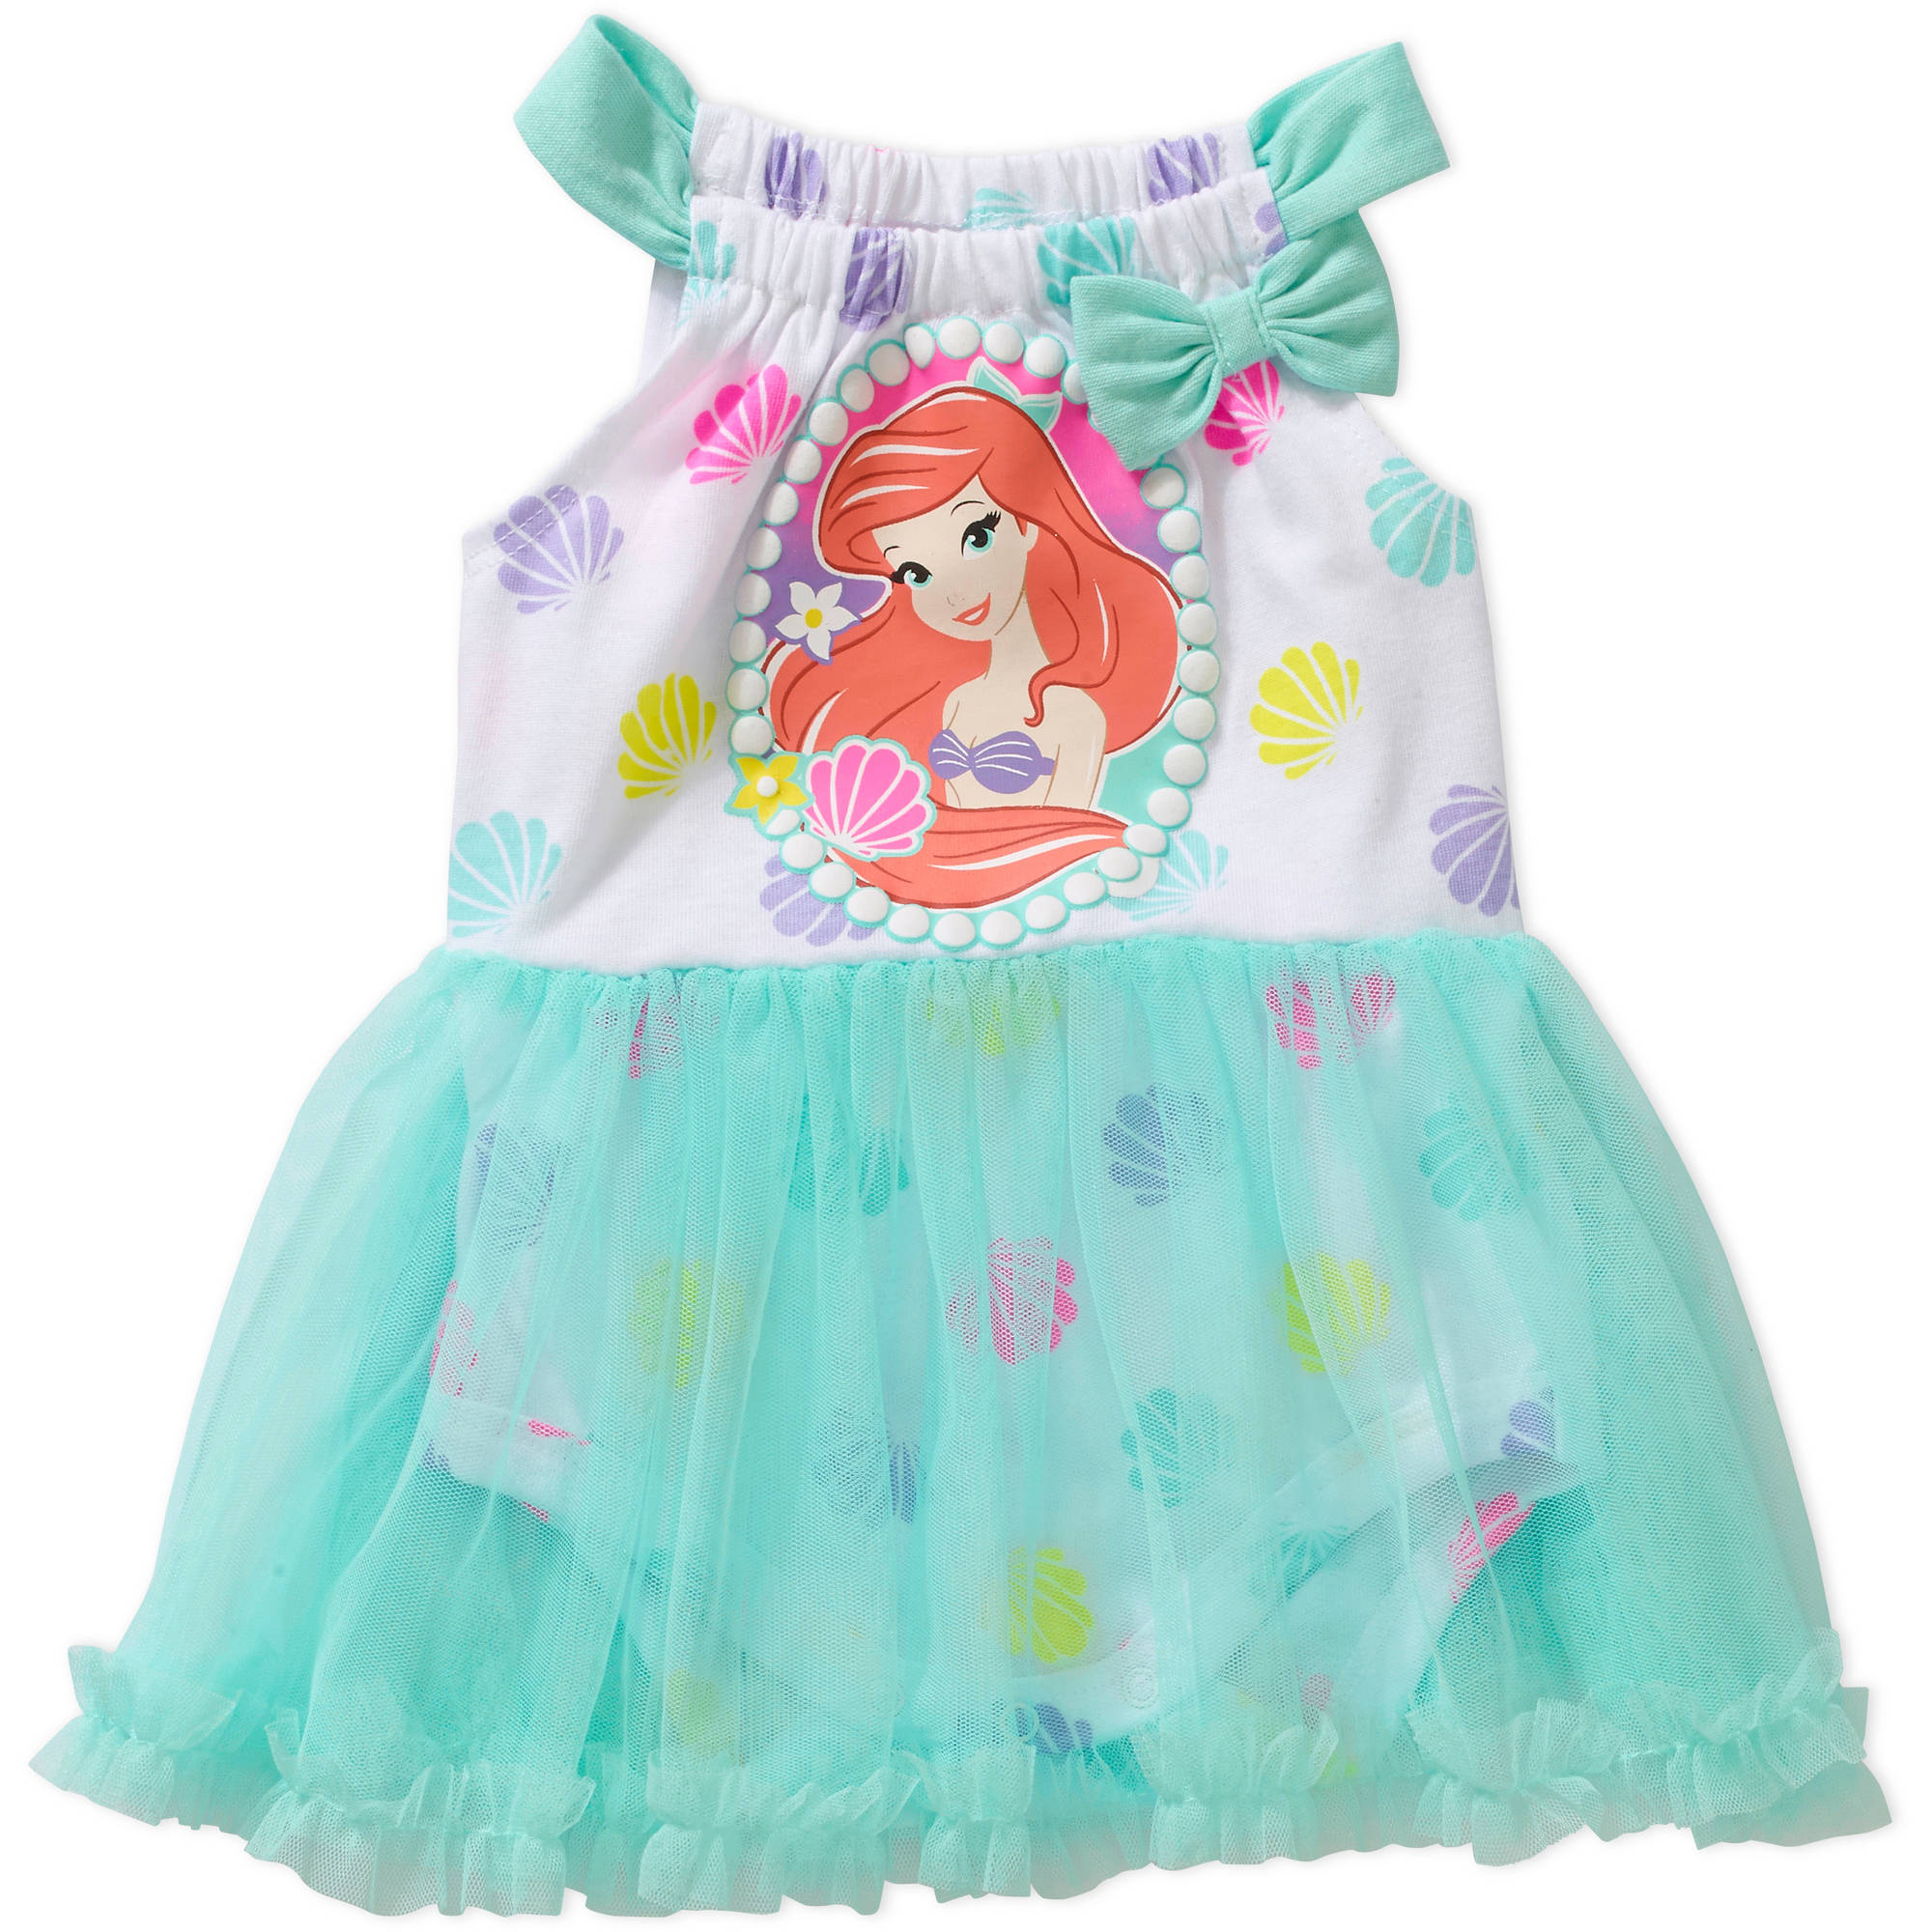 Ariel Baby Clothes Newest And Cutest Baby Clothing Collection By